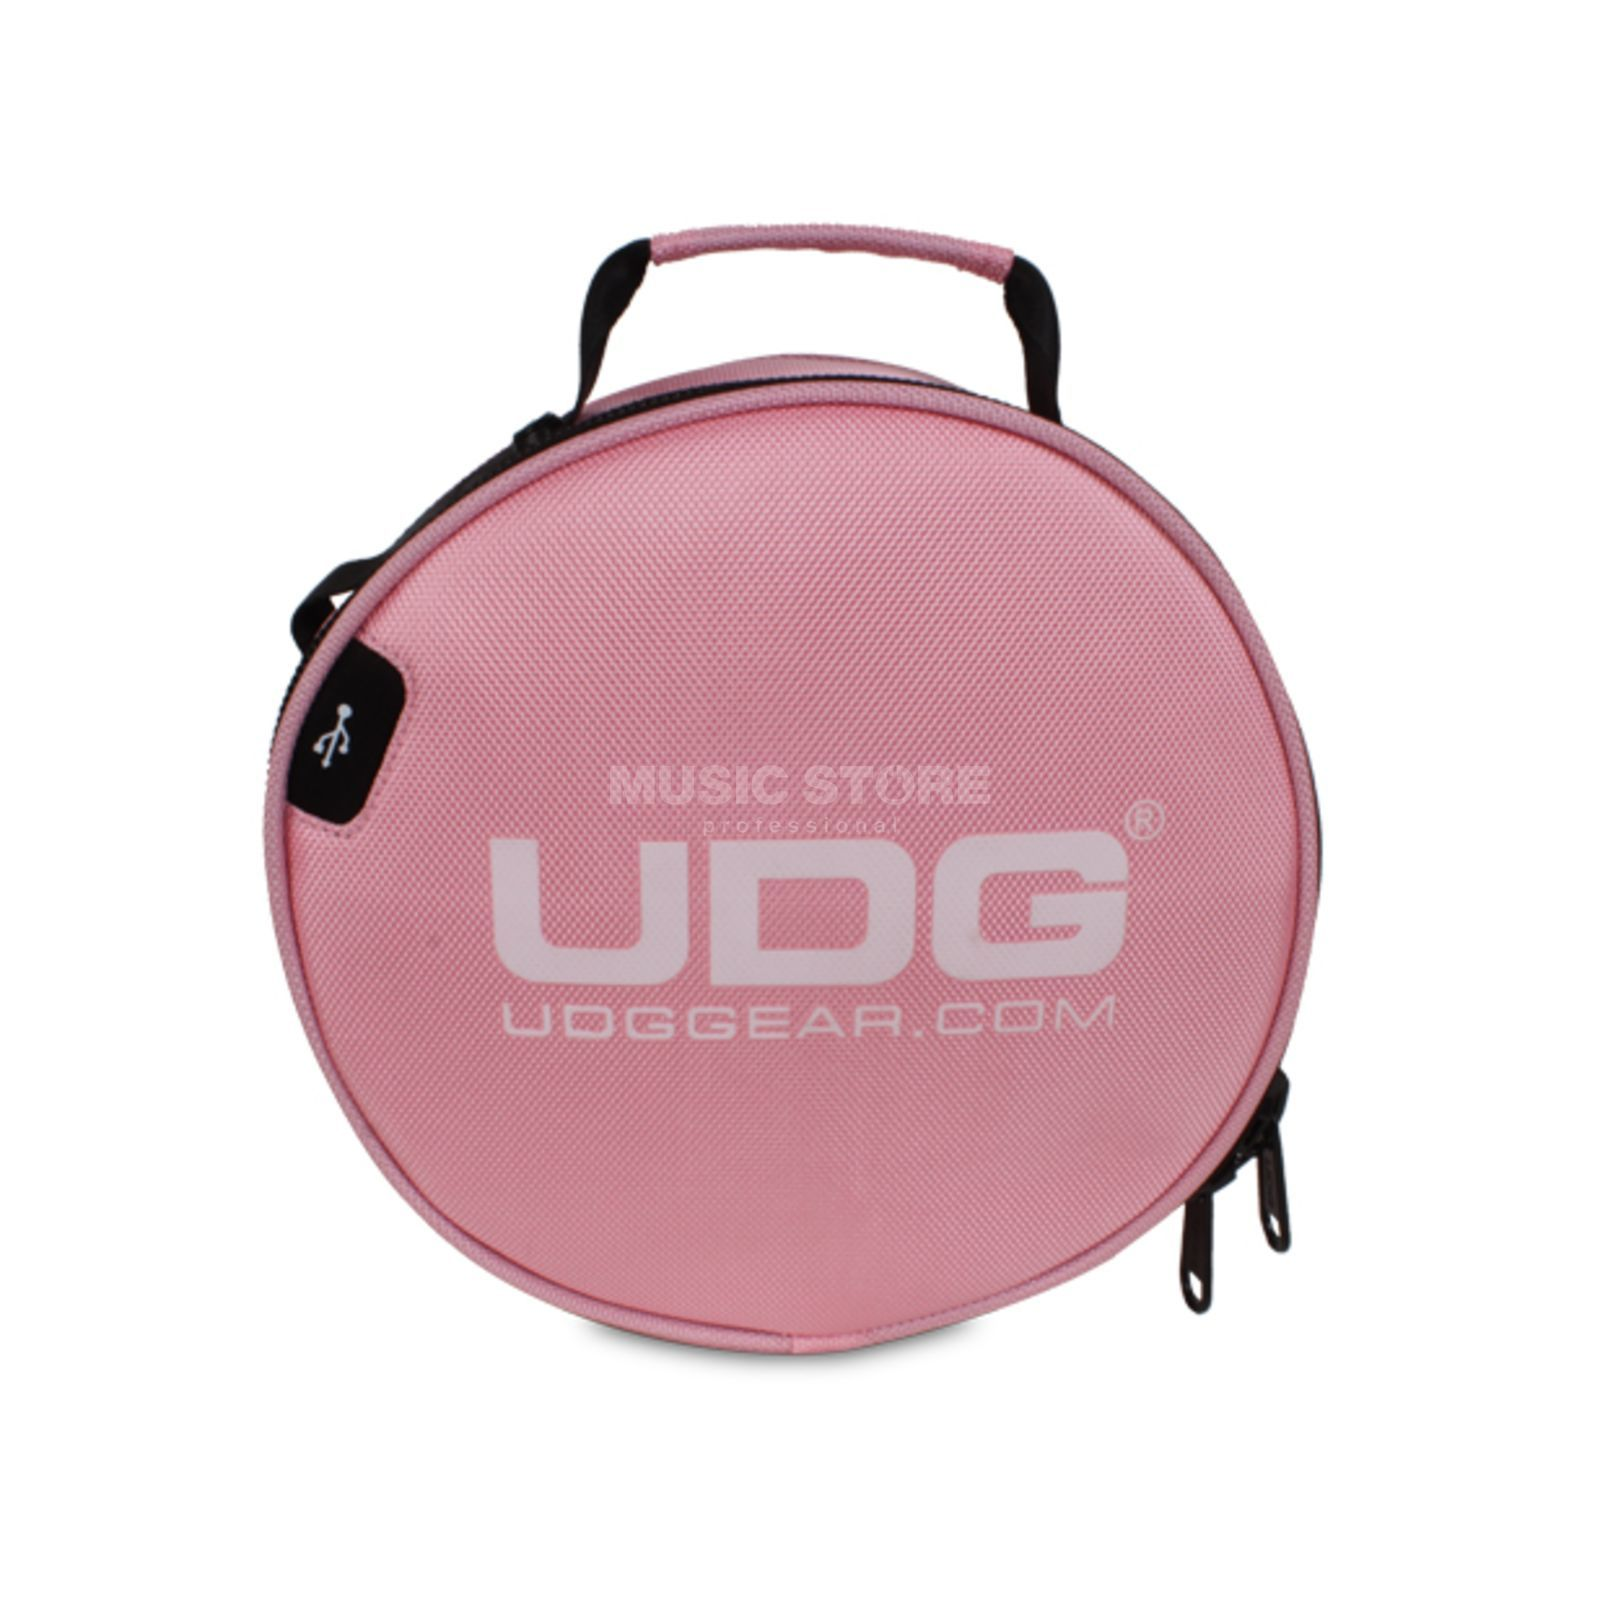 UDG Ultimate Digi Headphone Bag Pink (U9950PK) Produktbild